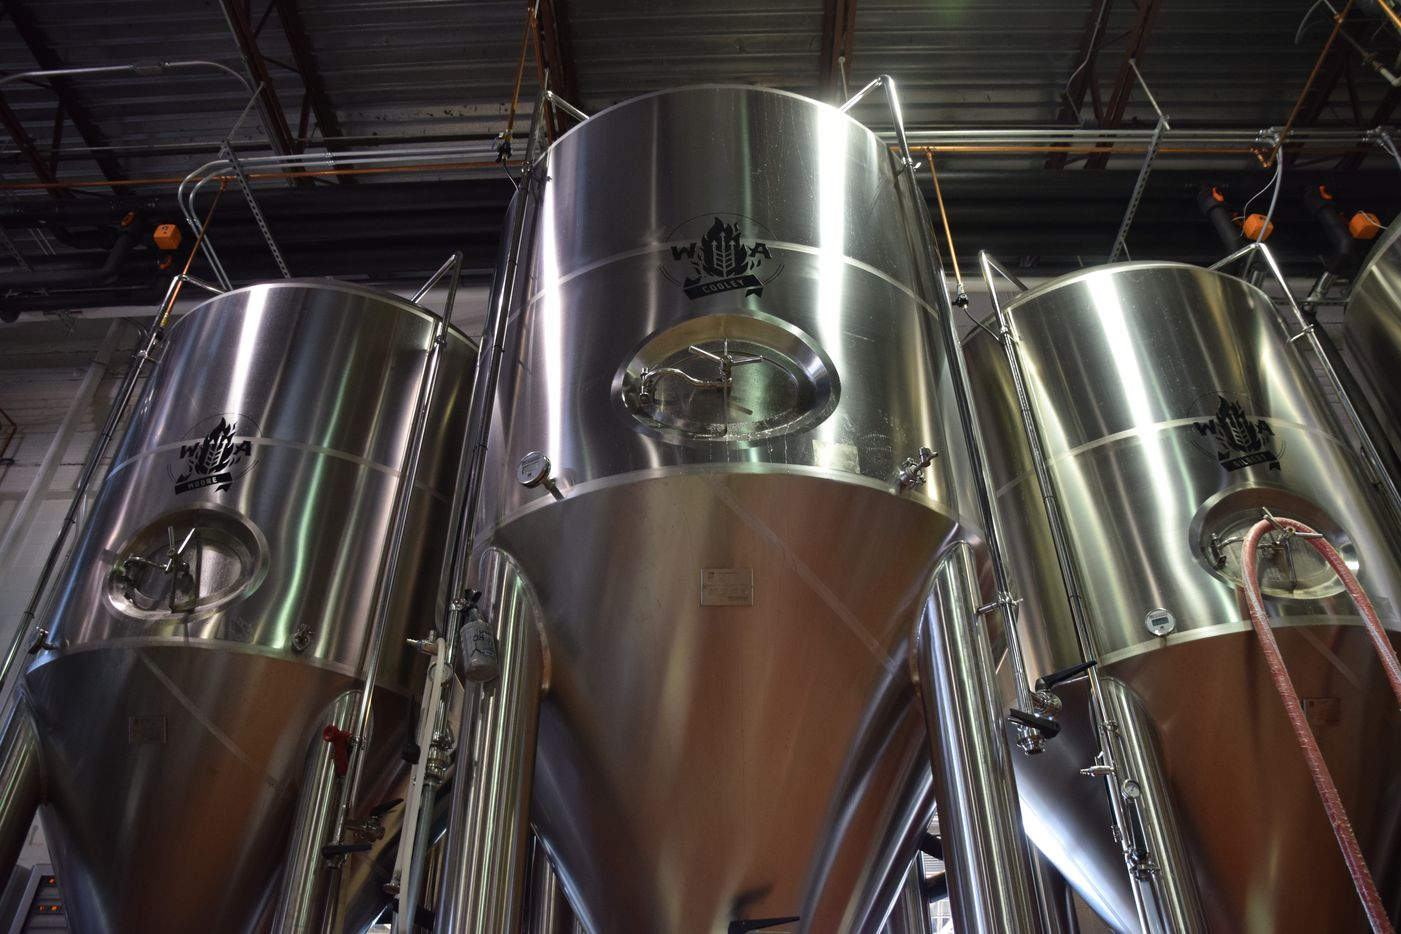 Wild Acre Brewing has a 30-barrel brewing system with 10,000 barrels worth of fermentation space.